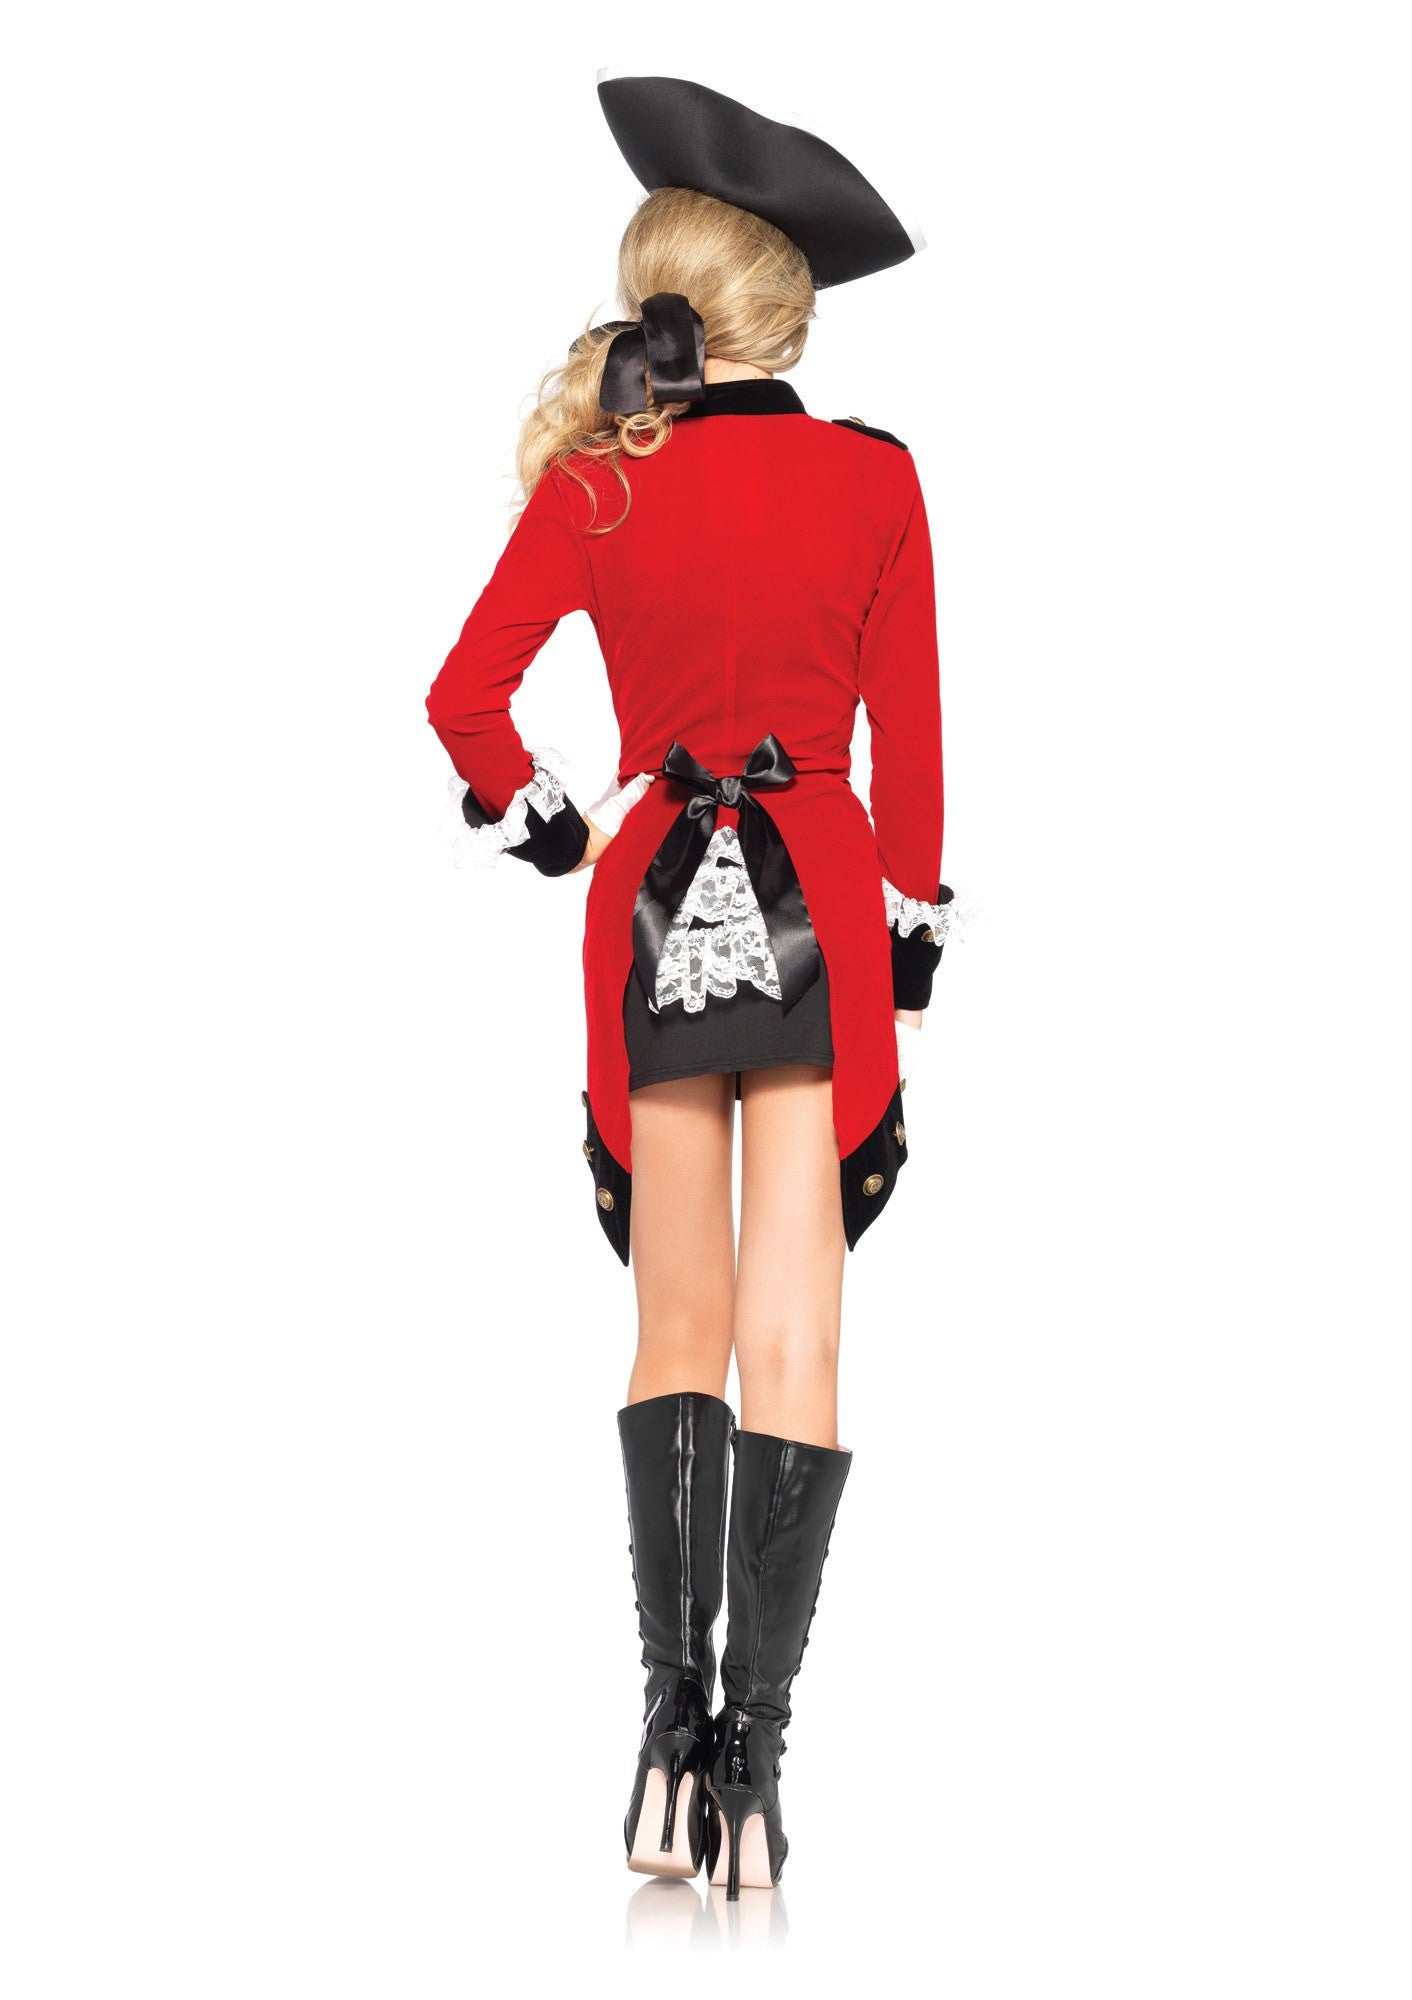 Costume - Rebel Red Coat Costume  sc 1 st  Stagecoach & Rebel Red Coat Costume - Stagecoach